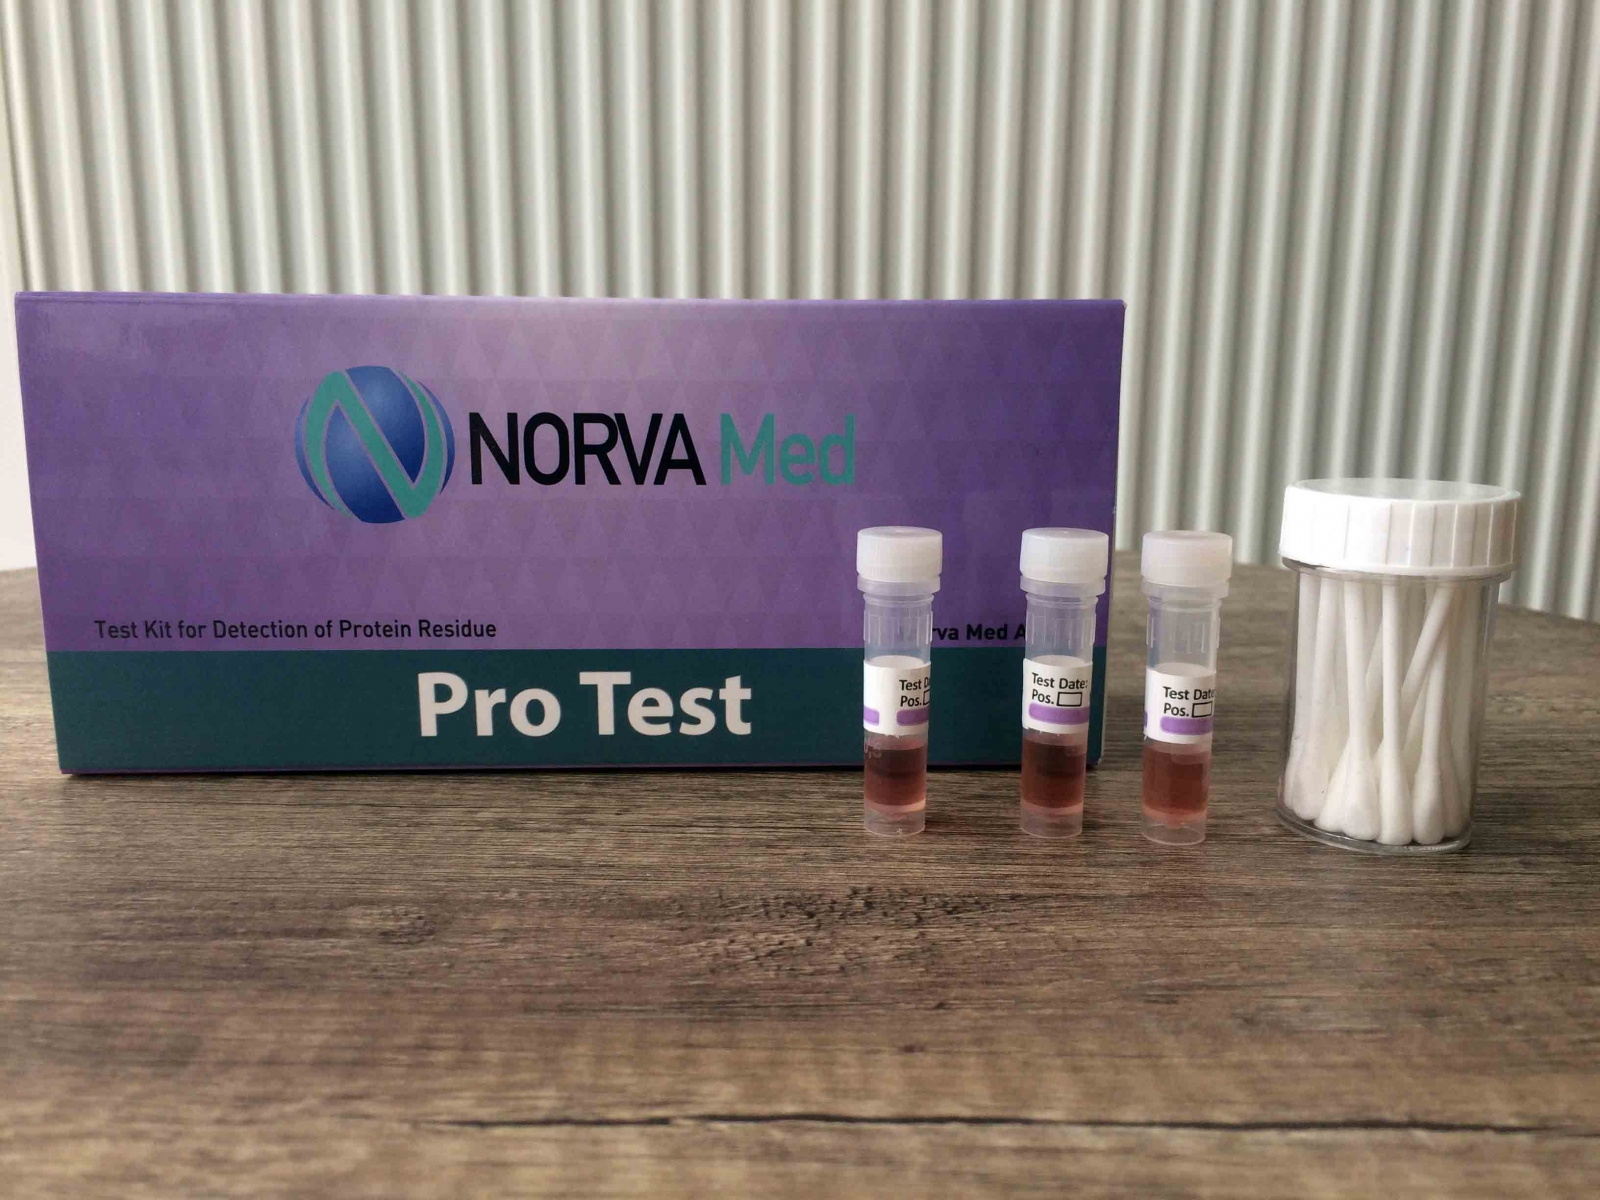 PROTEIN RESIDUE TEST KIT - PROTEST